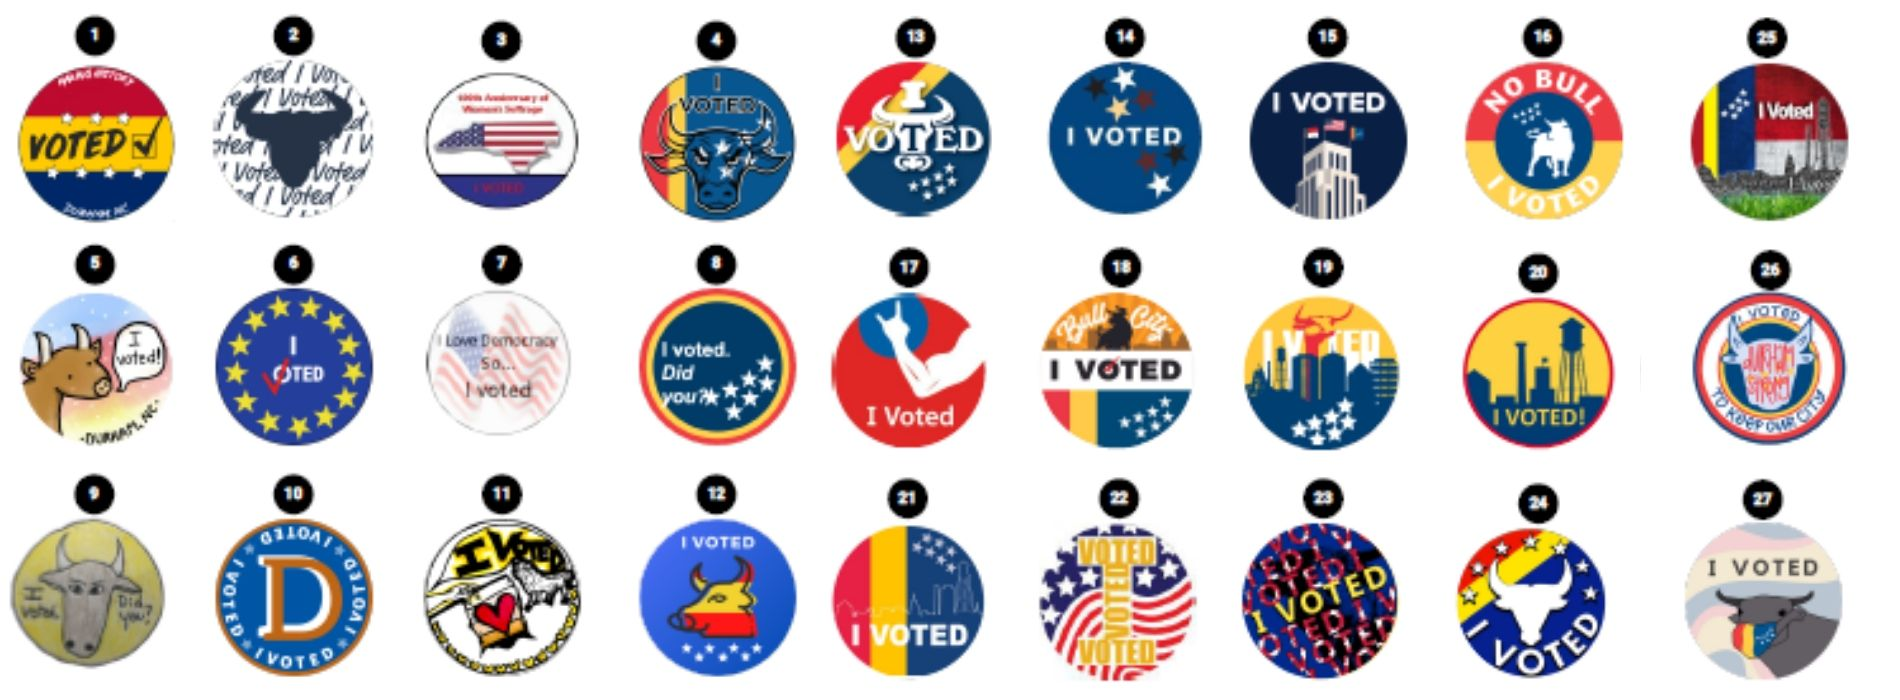 I Voted Contest Stickers